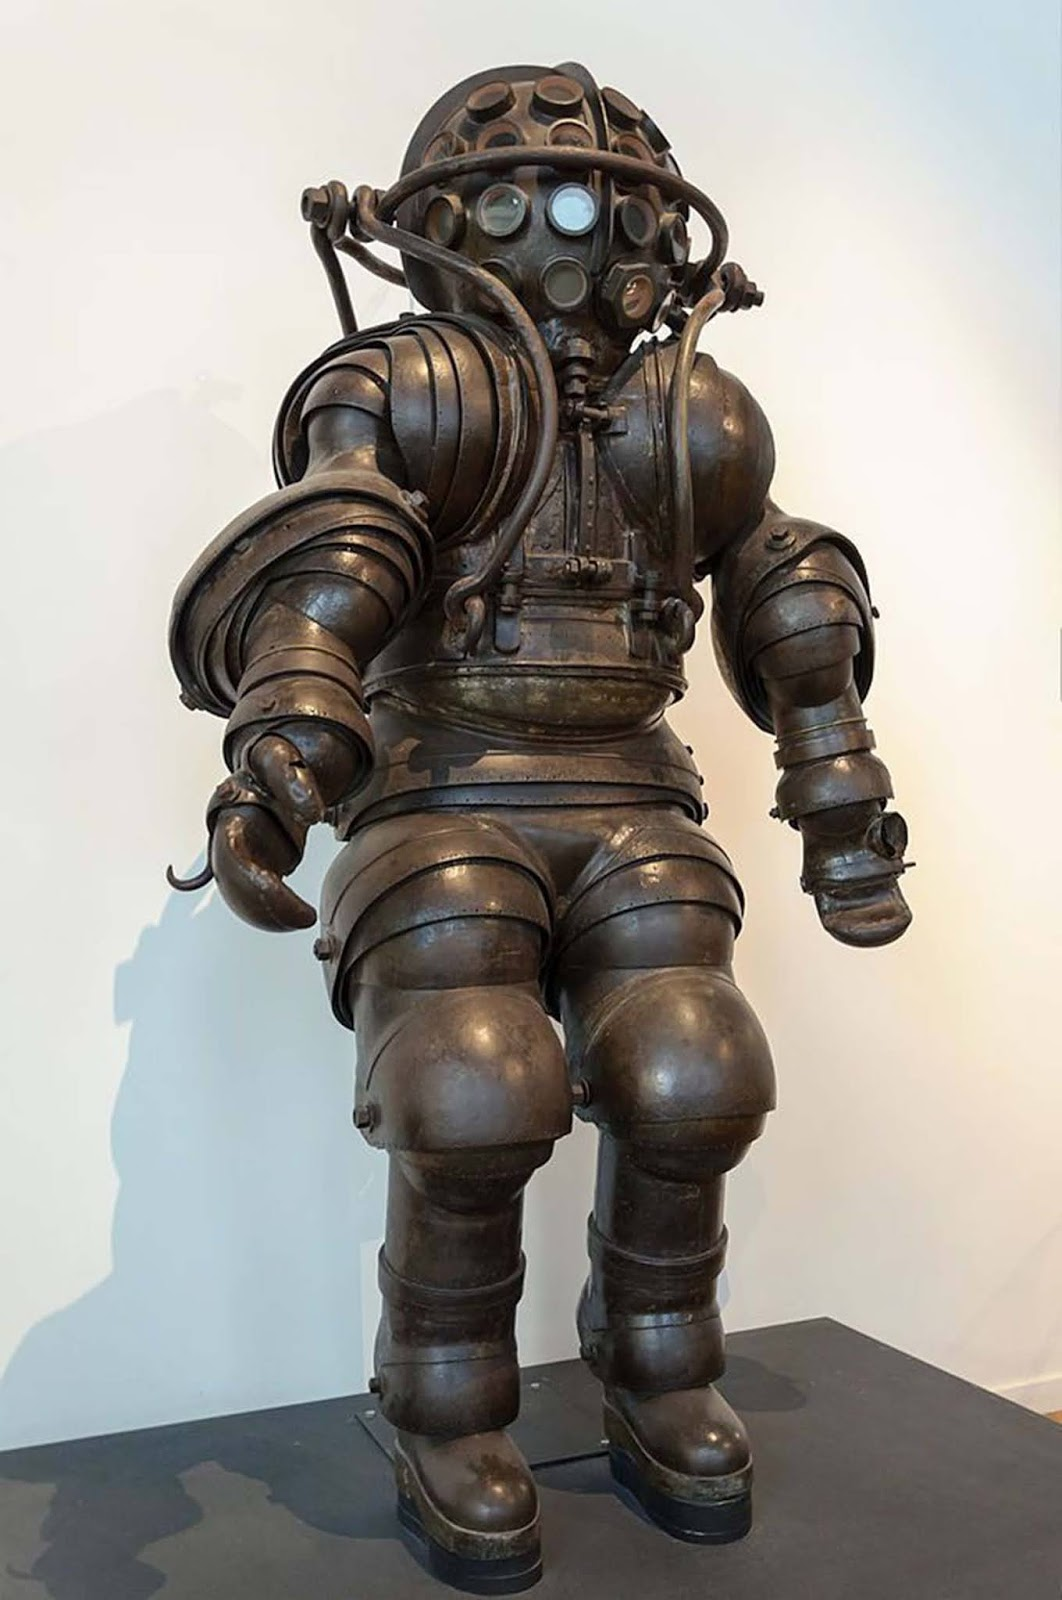 Diving suit designed by Alphonse and Theodore Carmagnolle.